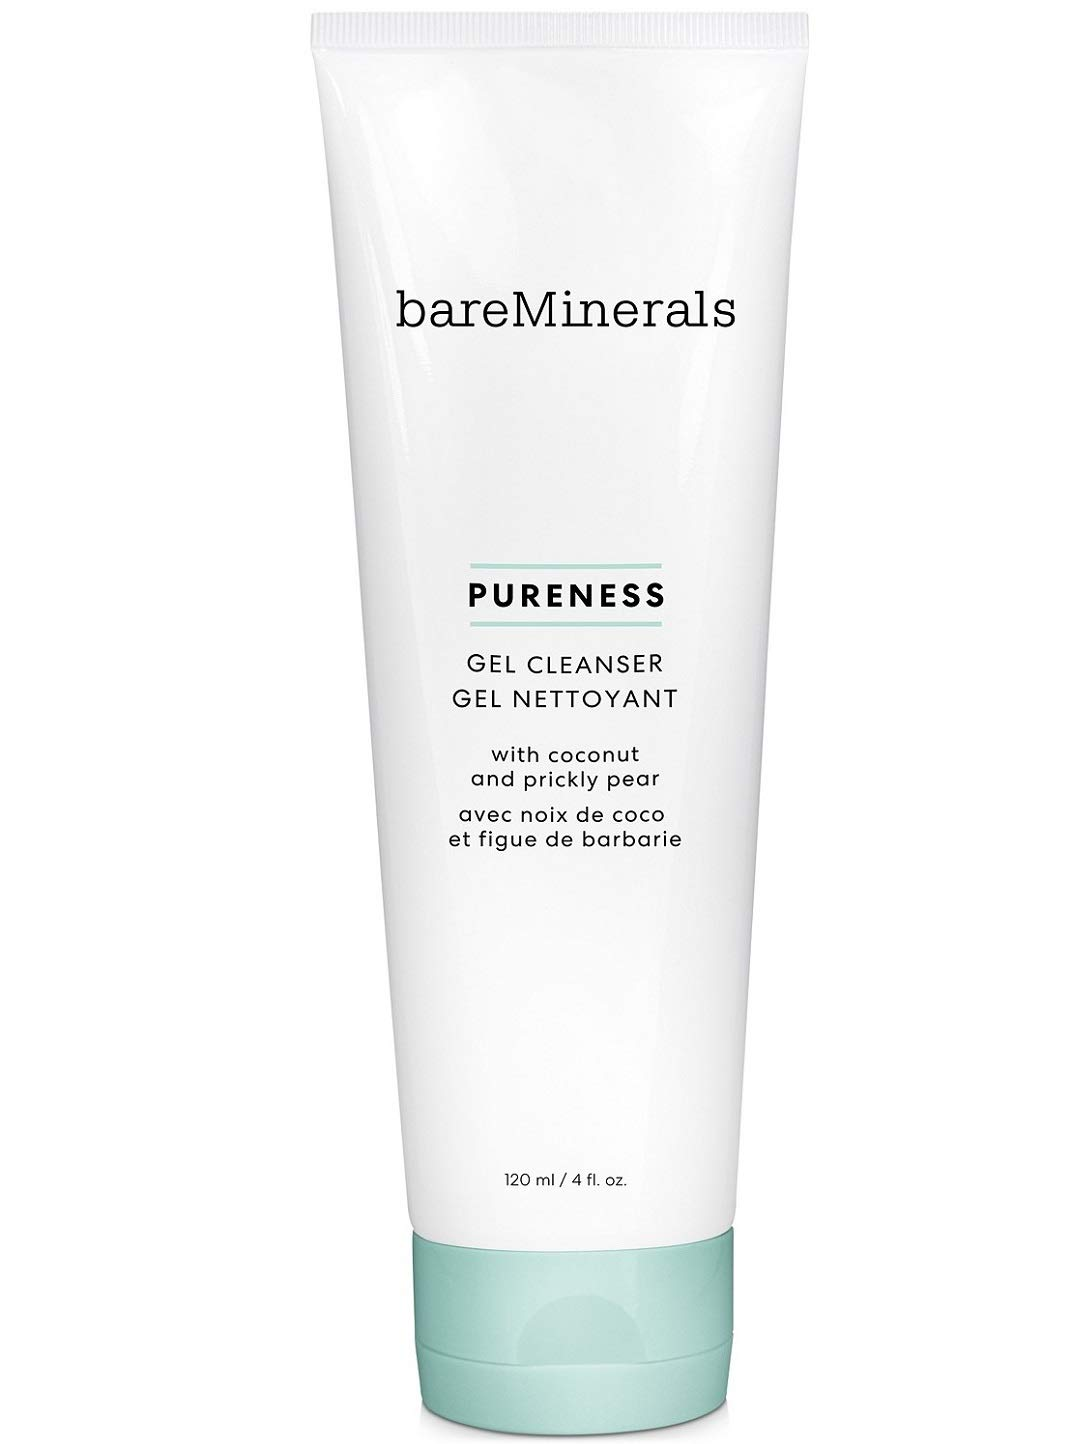 bareMinerals Pureness Gel Cleanser Coconut And Prickly Pear, 4.6 Ounce, Multi